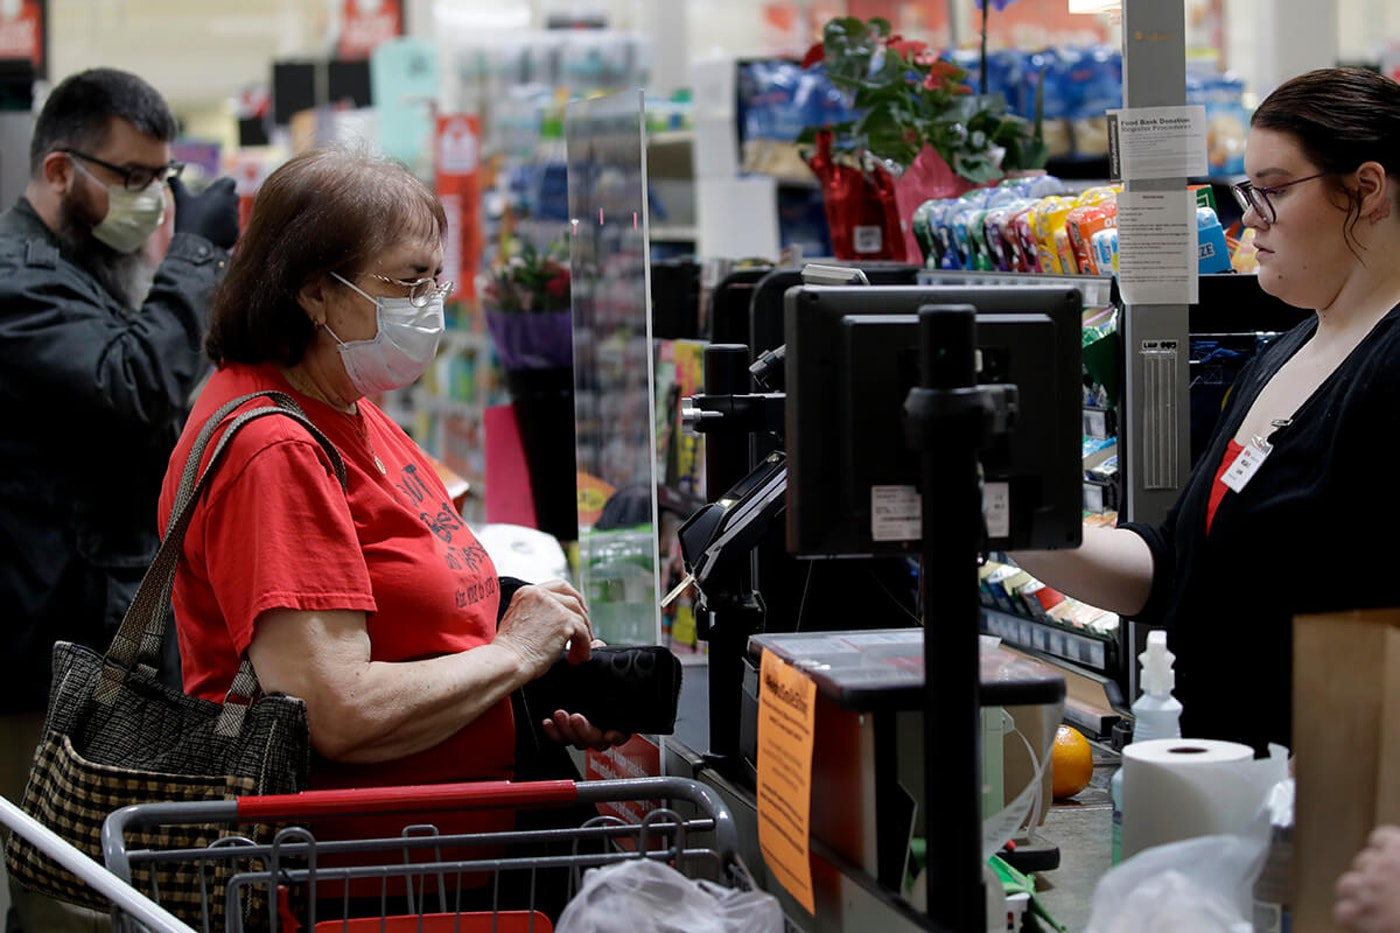 A woman checks out at the grocery store while wearing a mask.